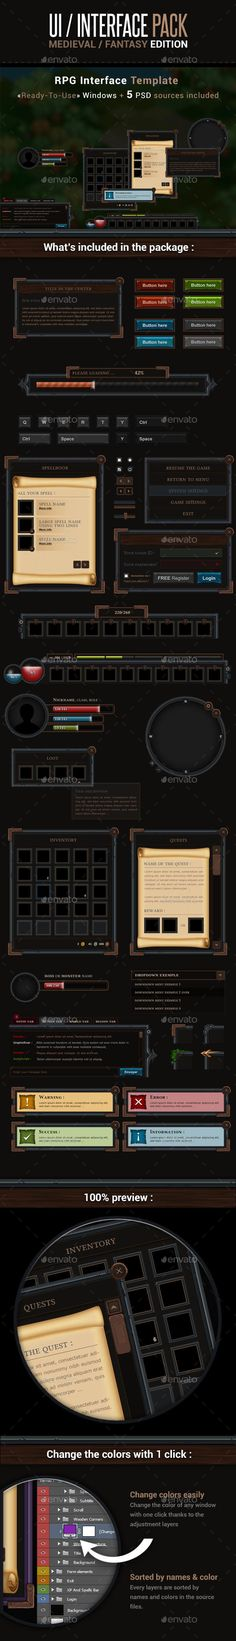 Game UI Interface Pack - Medieval Fantasy Edition Template PSD. Download here: http://graphicriver.net/item/game-ui-interface-pack-medieval-fantasy-edition/16437348?ref=ksioks